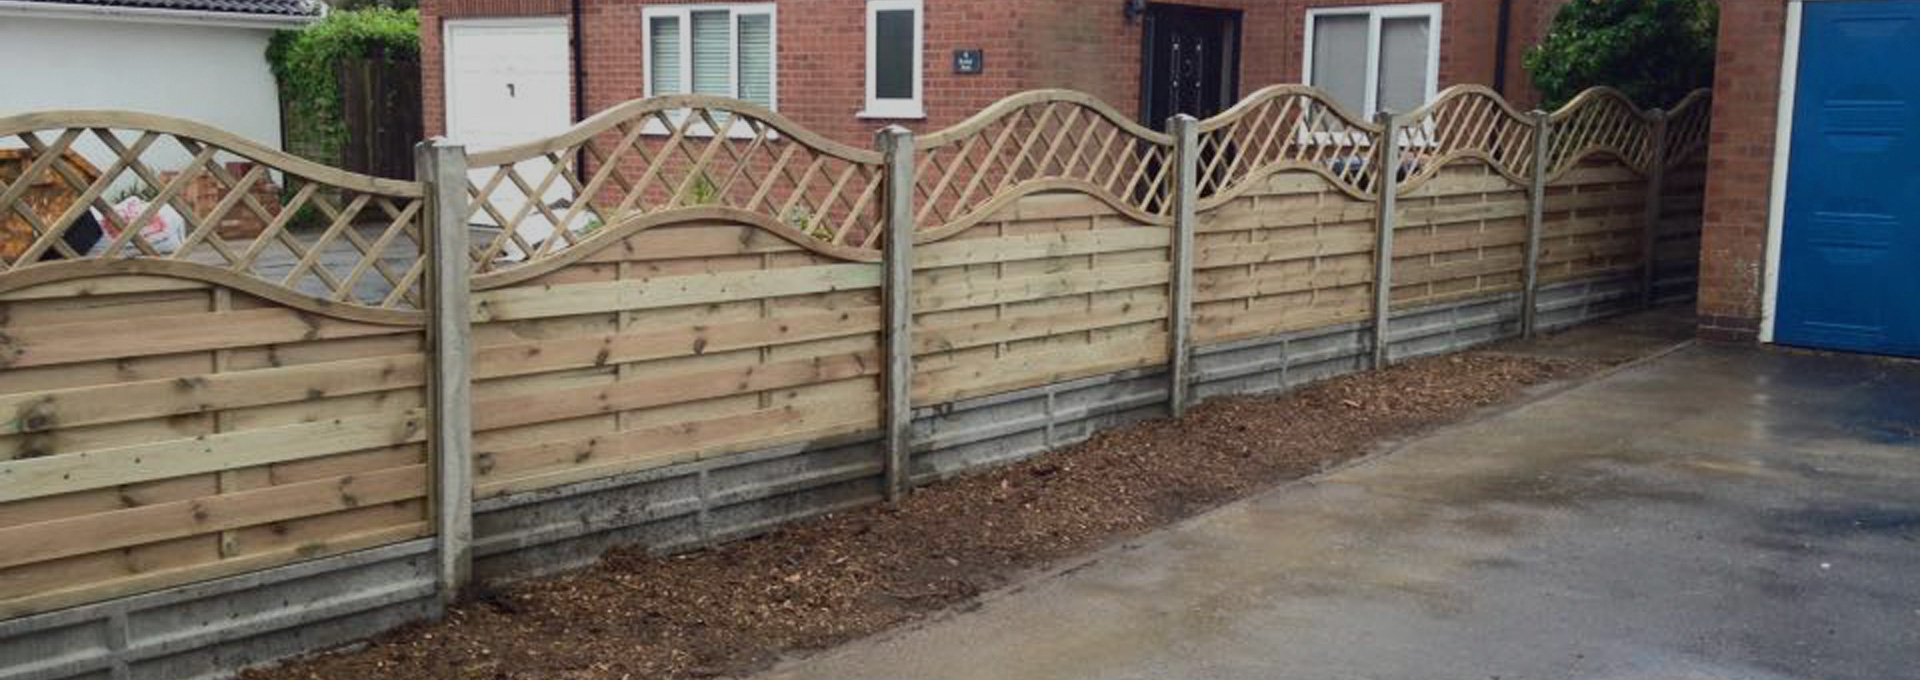 Wooden fence fitted by Outback landscapes in between two brick houses.